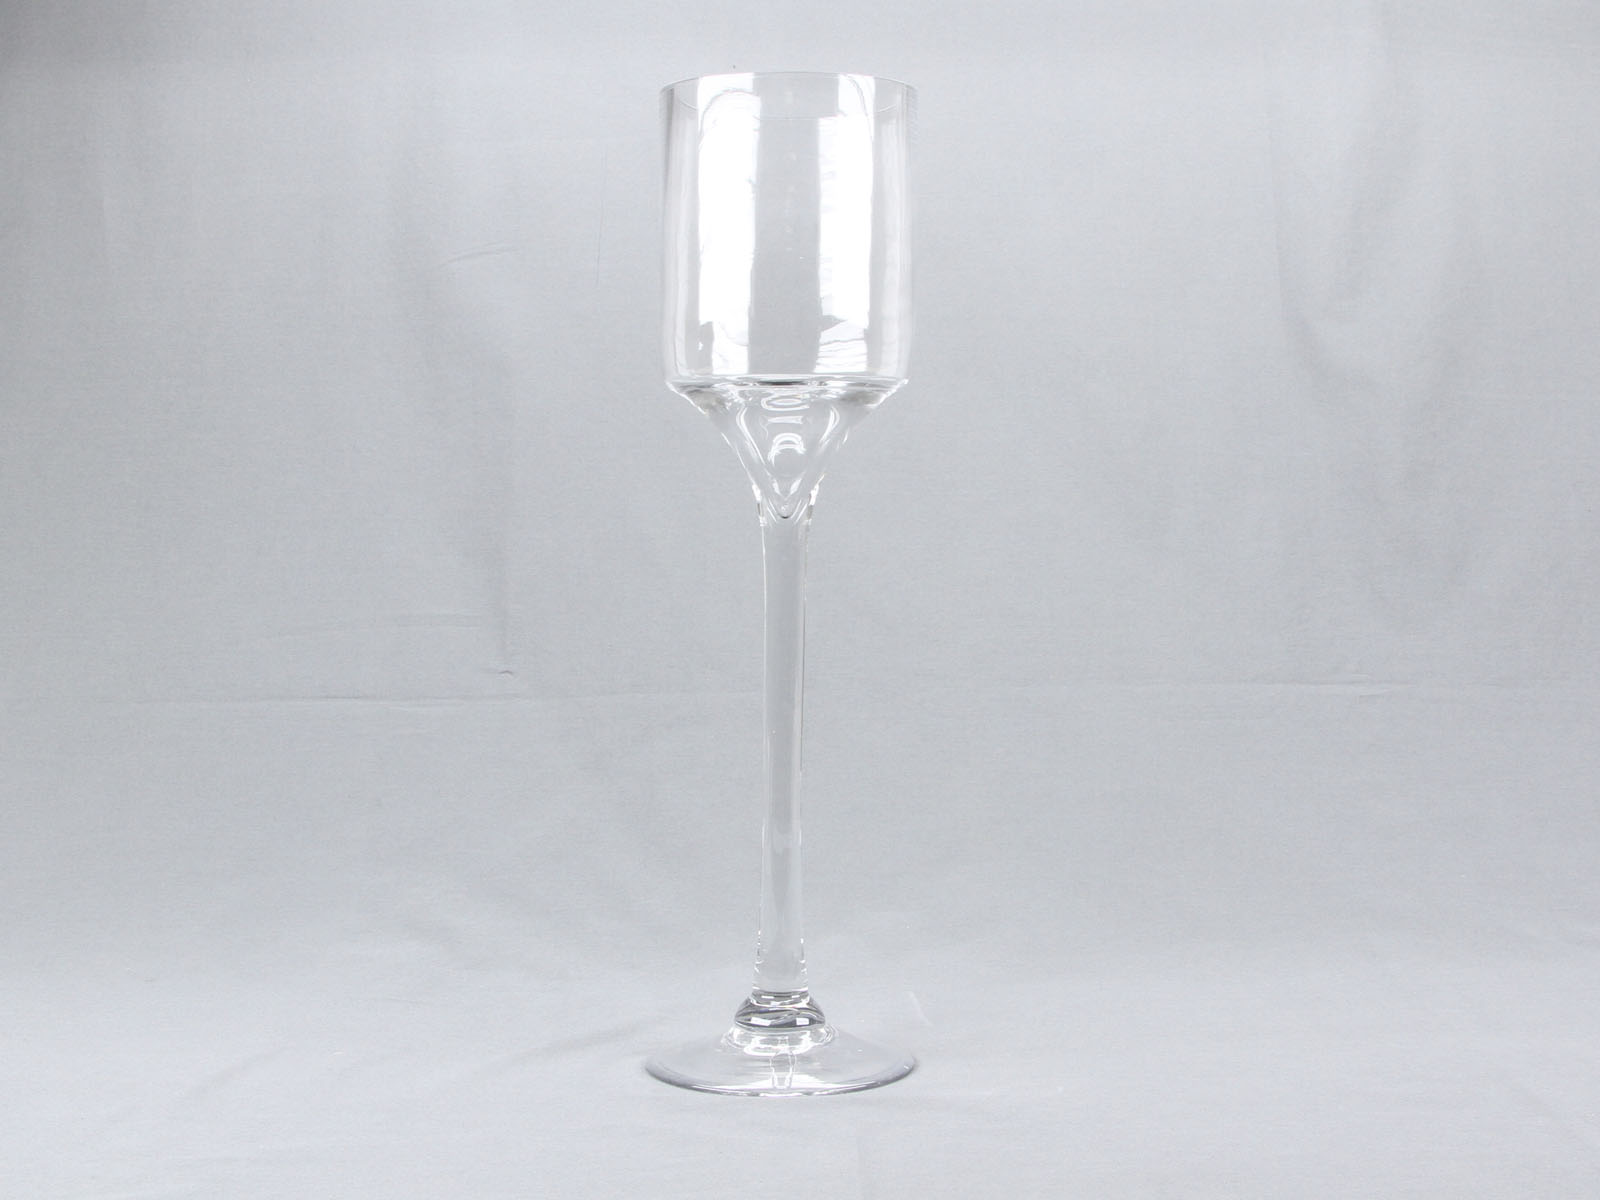 18 Quot Tall 4 Quot Opening Clear Wine Glass Cylinder Vase Flower Candle Display Decor Ebay